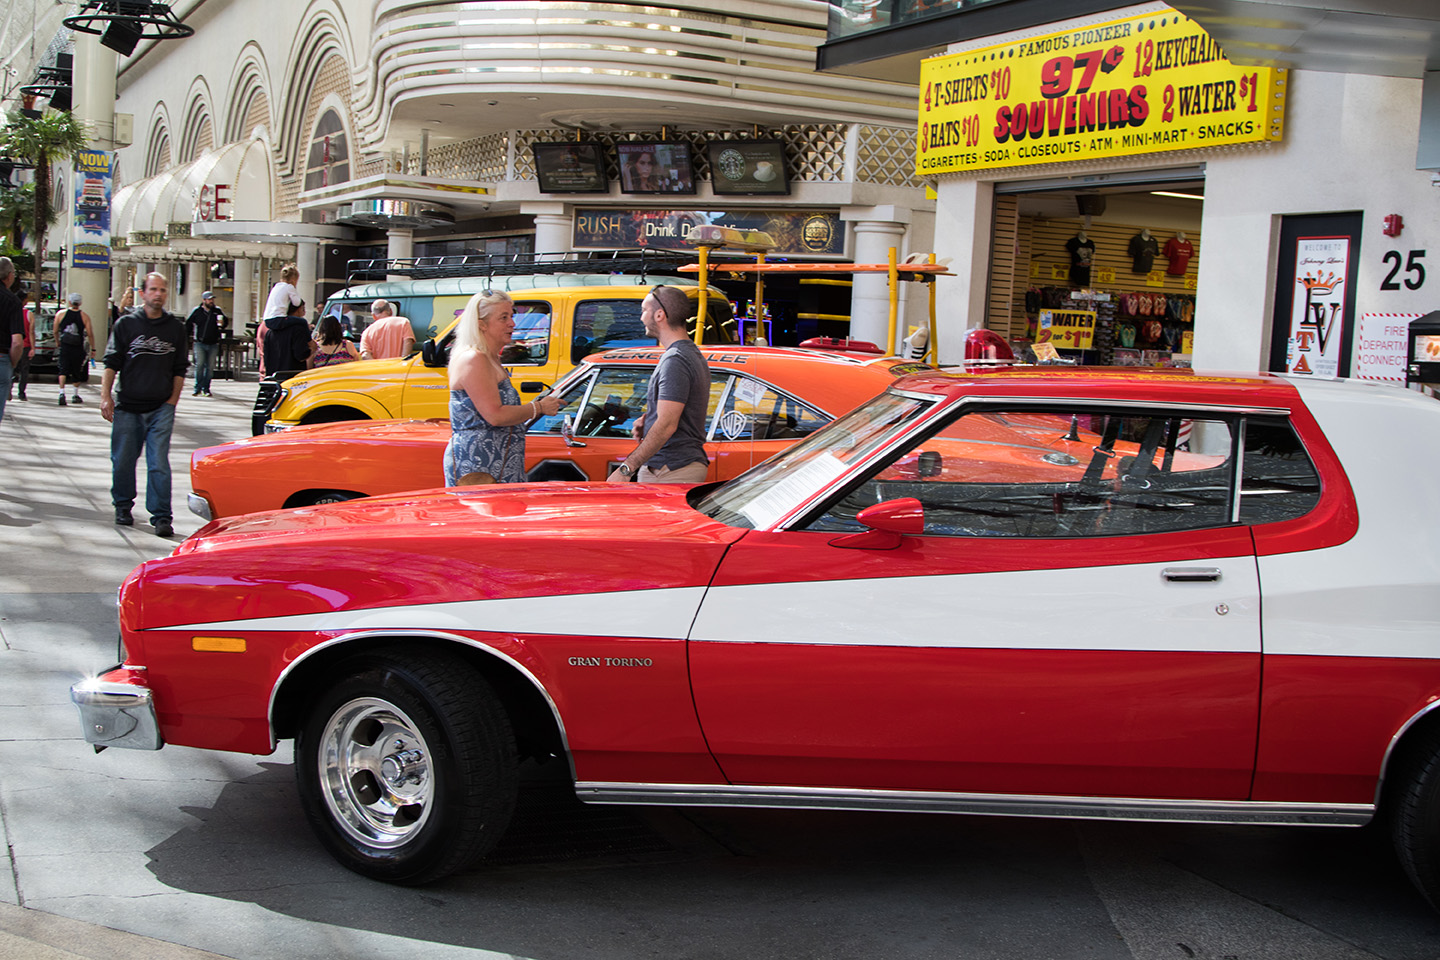 Las Vegas Car Stars – Fremont St. – June 14-16, 2018